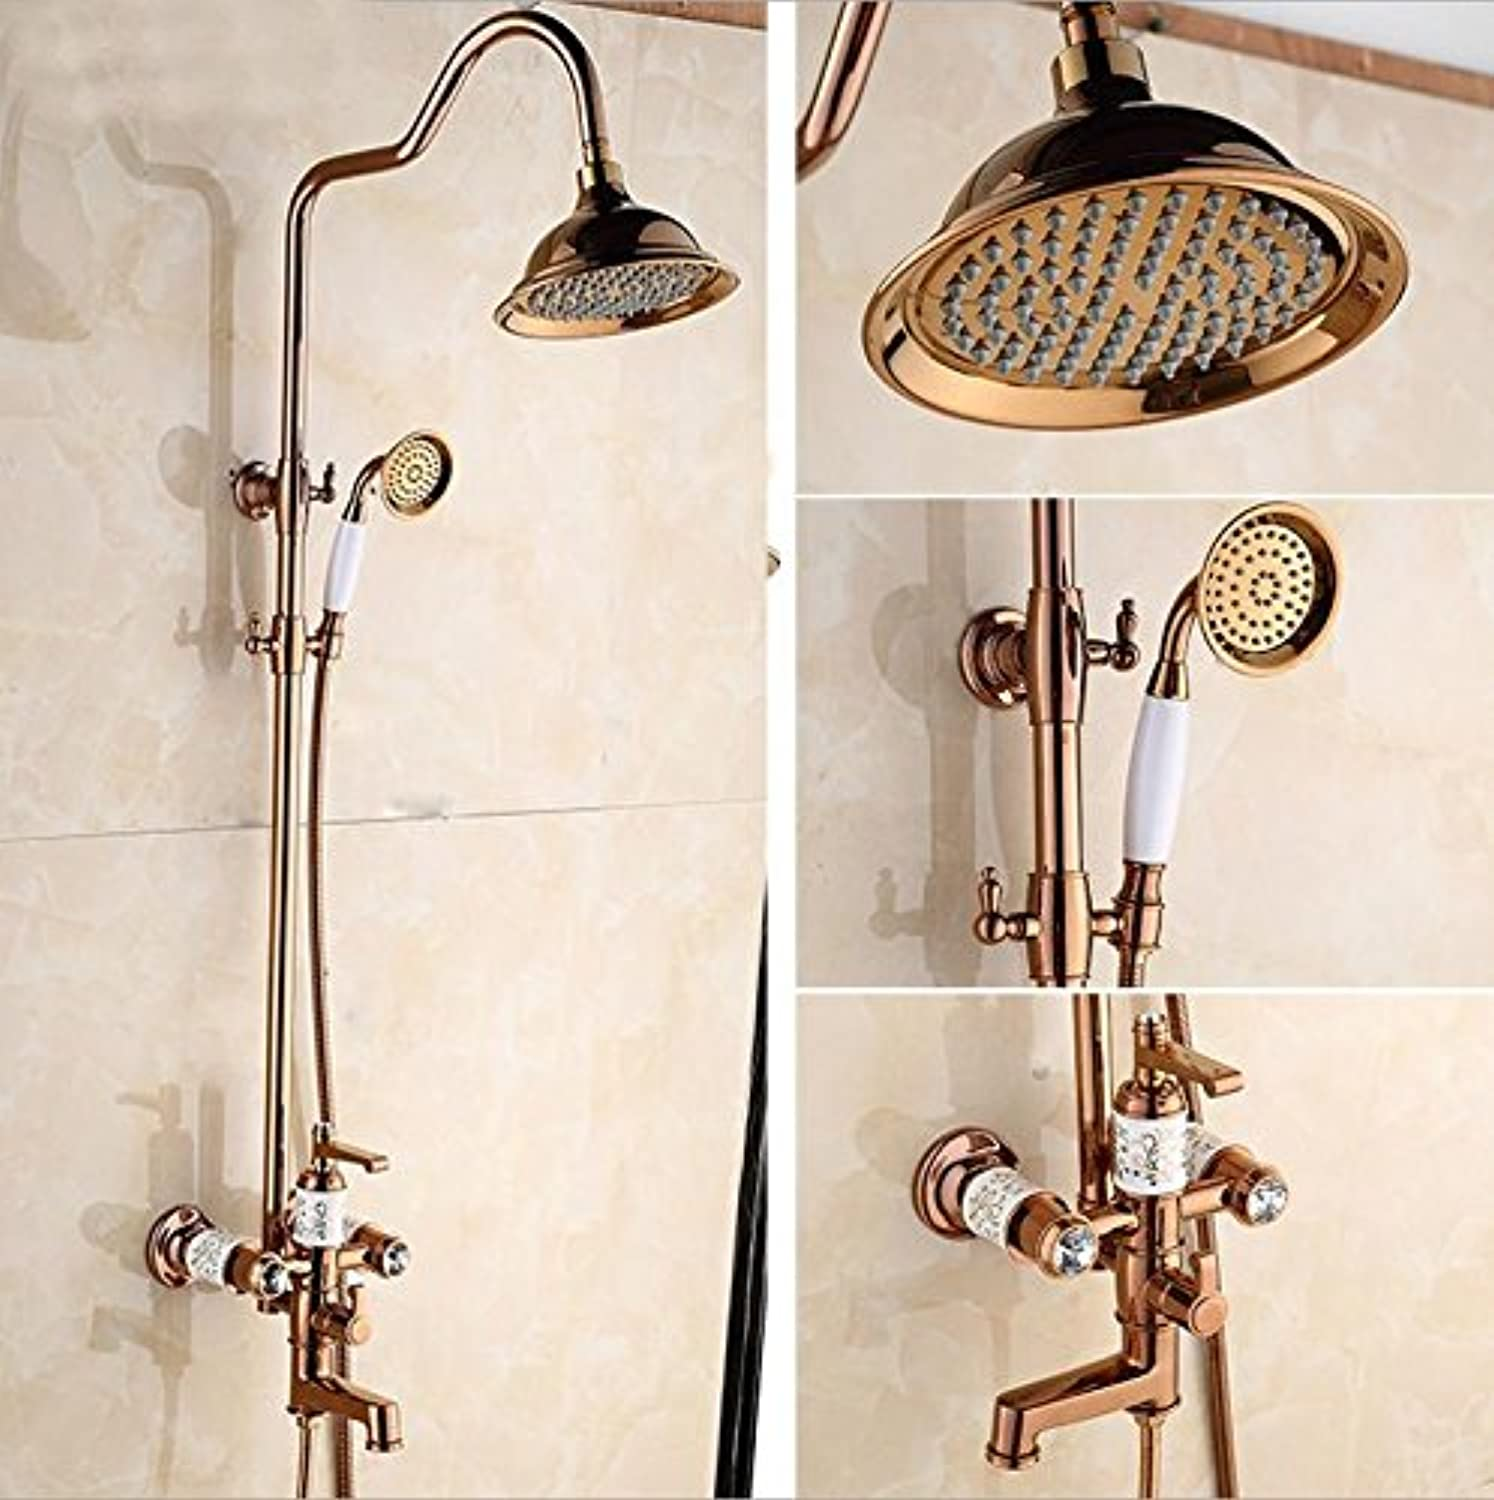 pink jingaofushuai shower set valve body casting high throw and refined copper plating shower set